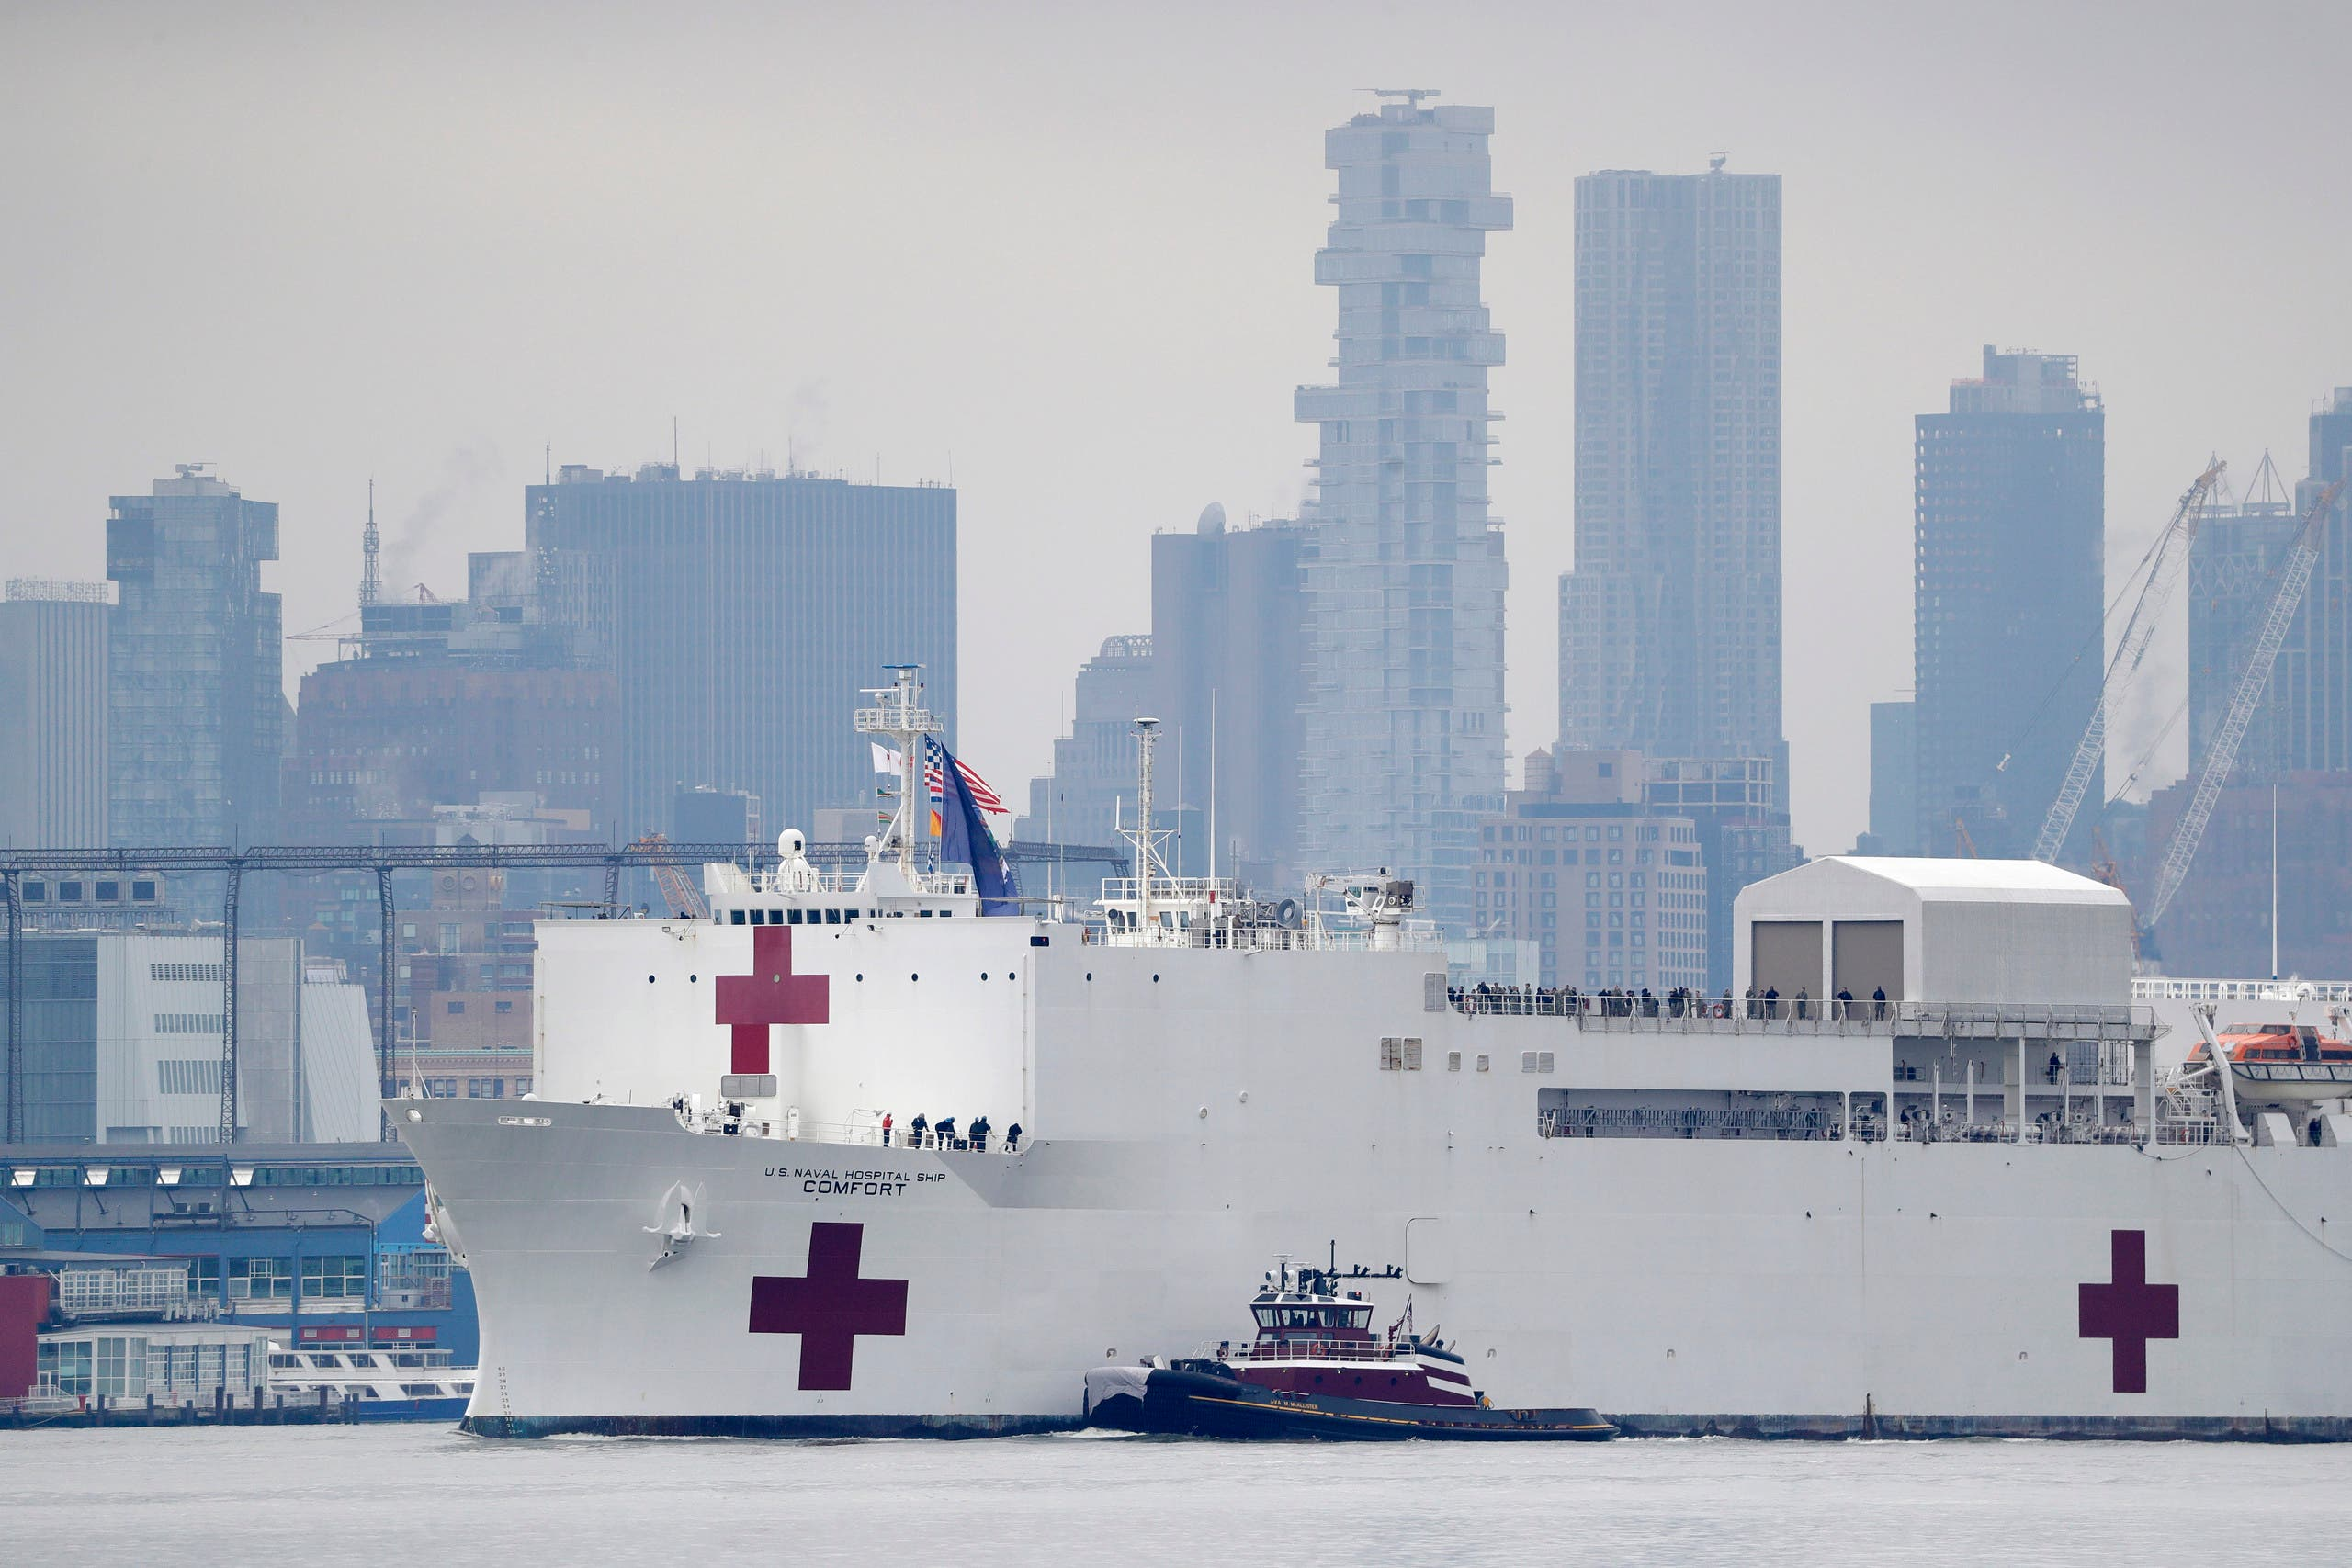 The Navy hospital ship USNS Comfort passes lower Manhattan on its way to docking in New York on March 30, 2020. (AP)